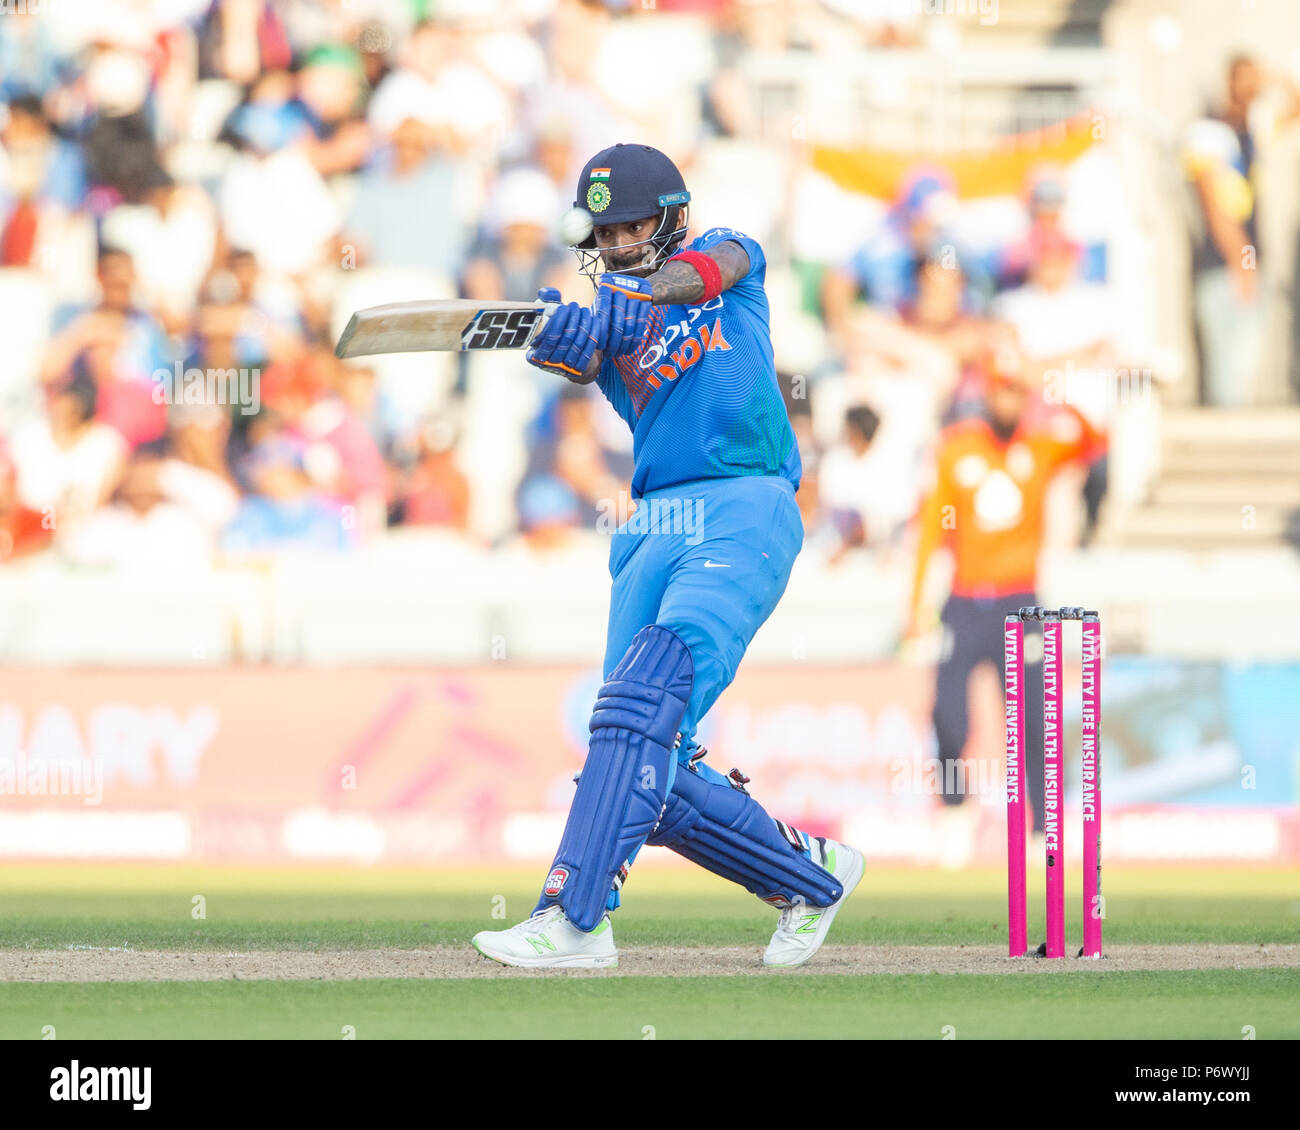 Manchester, UK. 3rd of July 2018 , Emirates Old Trafford, Manchester, England, 1st IT20, Vitality IT20 Series, England v India; KL Rahul of India hits a six Credit: News Images /Alamy Live News - Stock Image